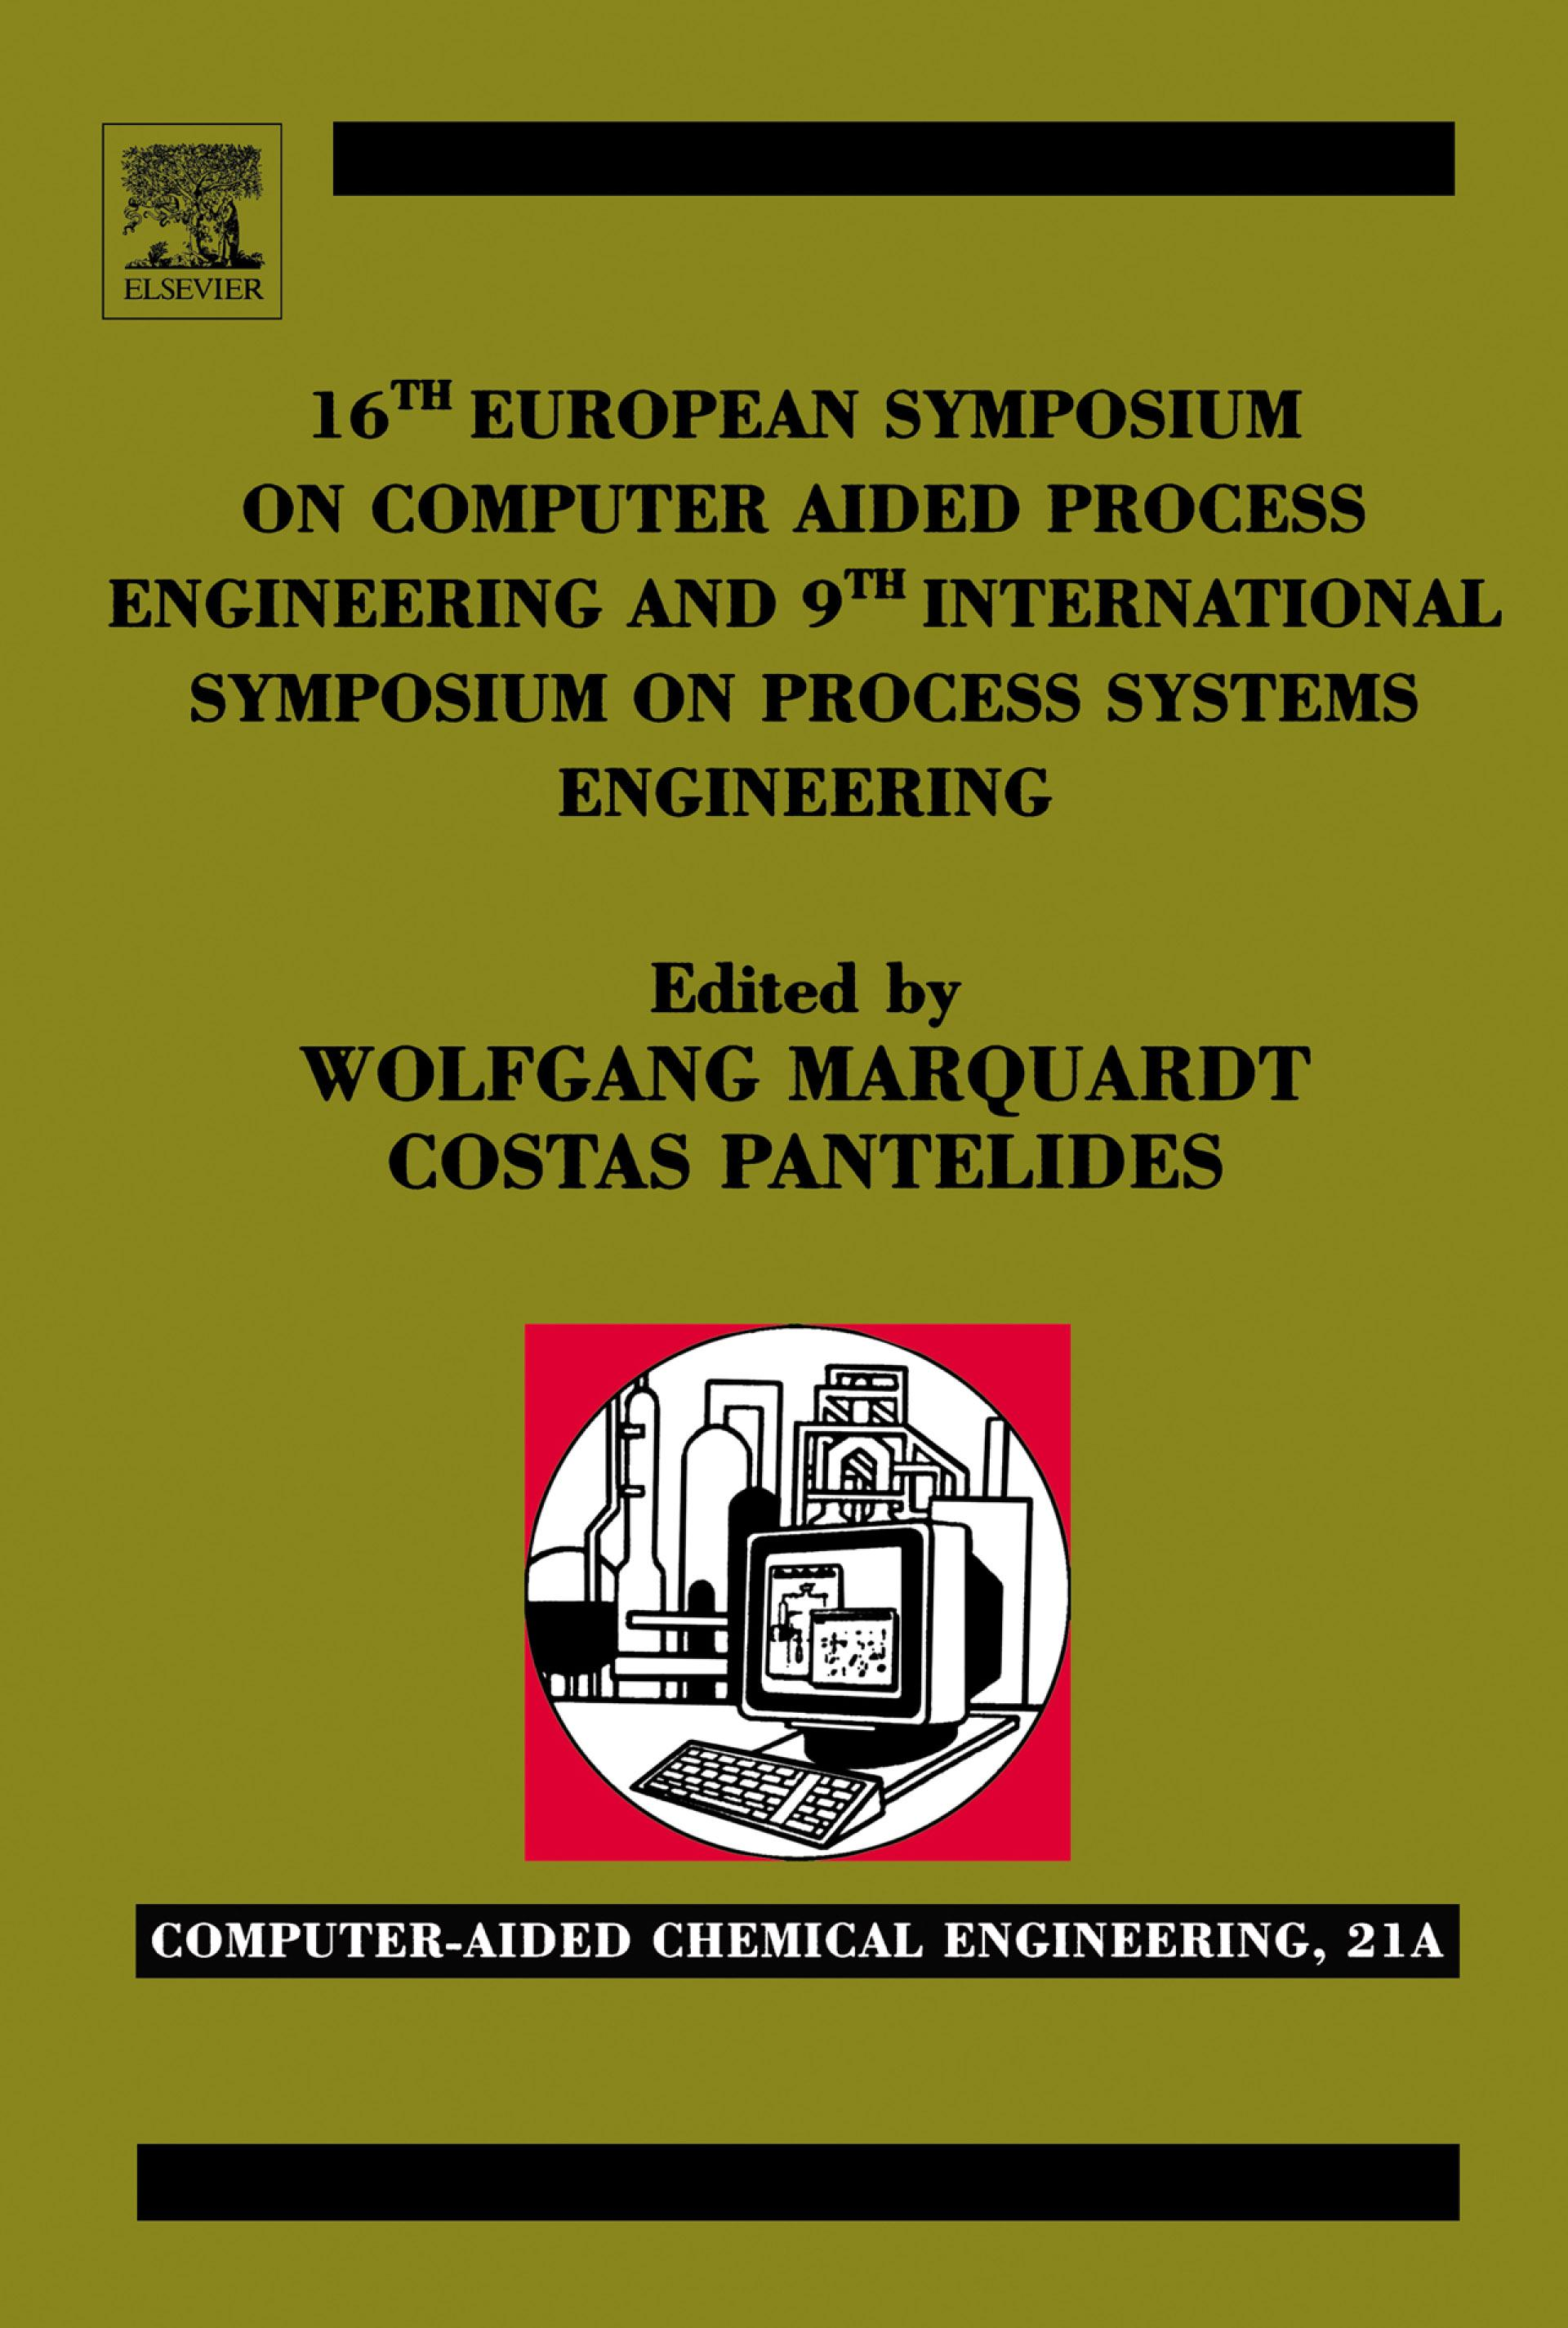 16th European Symposium on Computer Aided Process Engineering and 9th International Symposium on Process Systems Engineering EB9780080525808